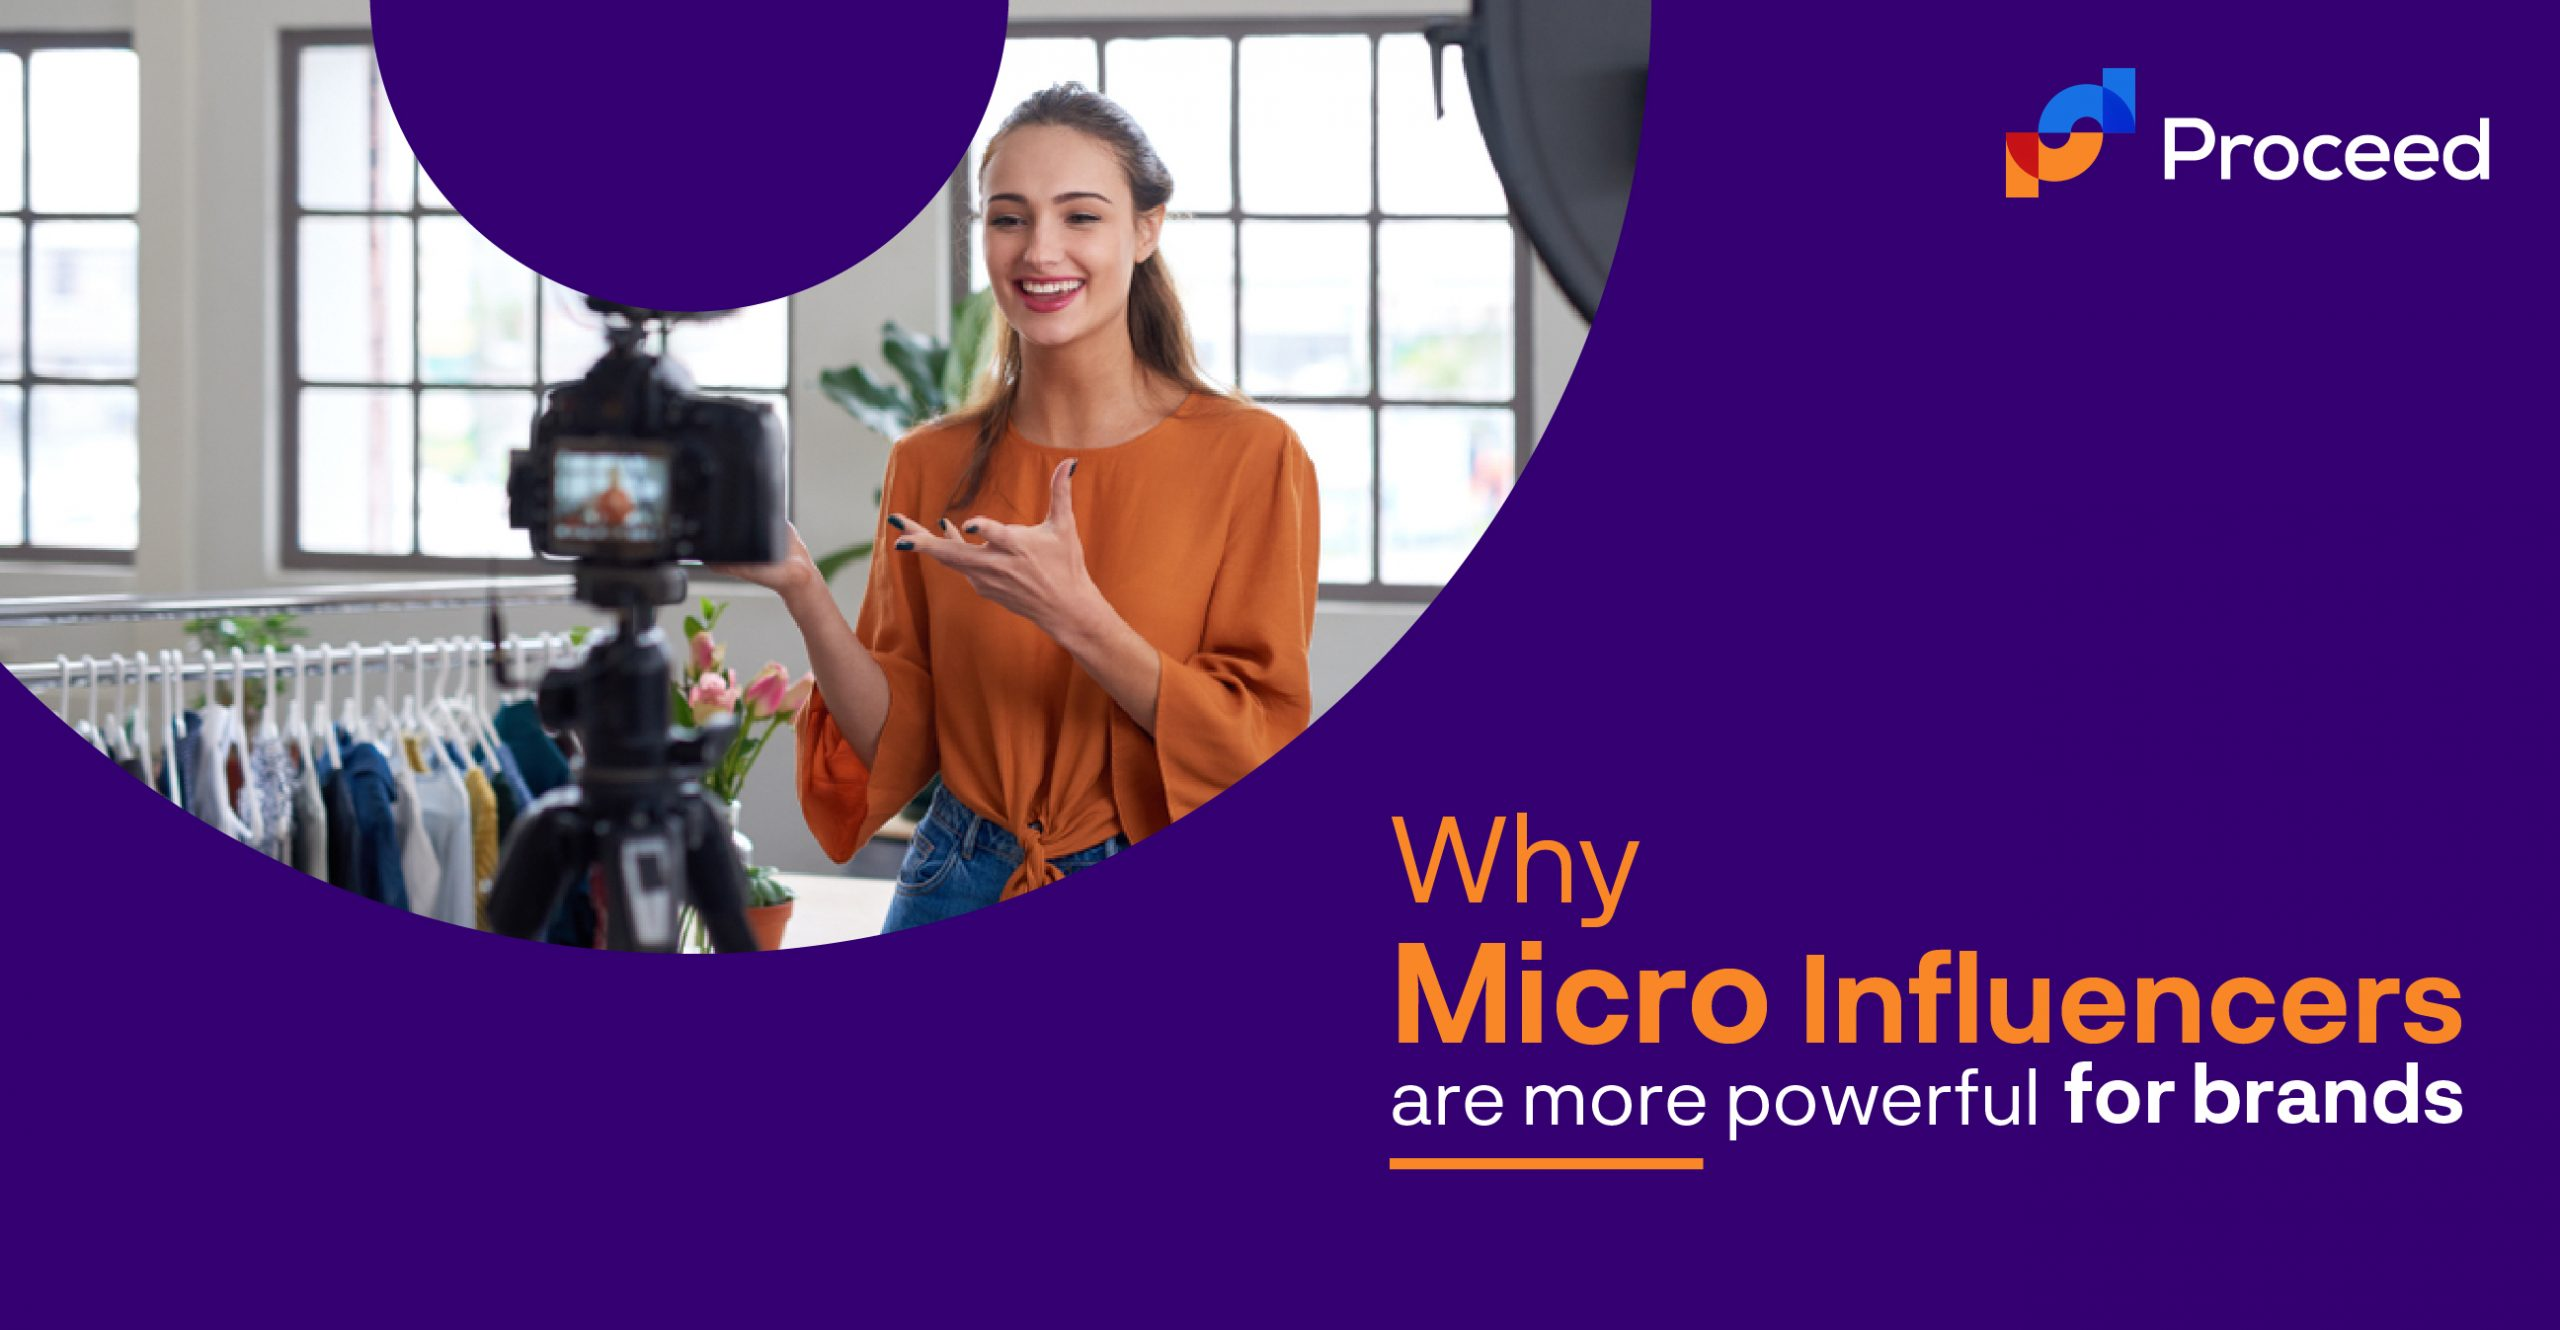 Why Micro-Influencers are more powerful for brands